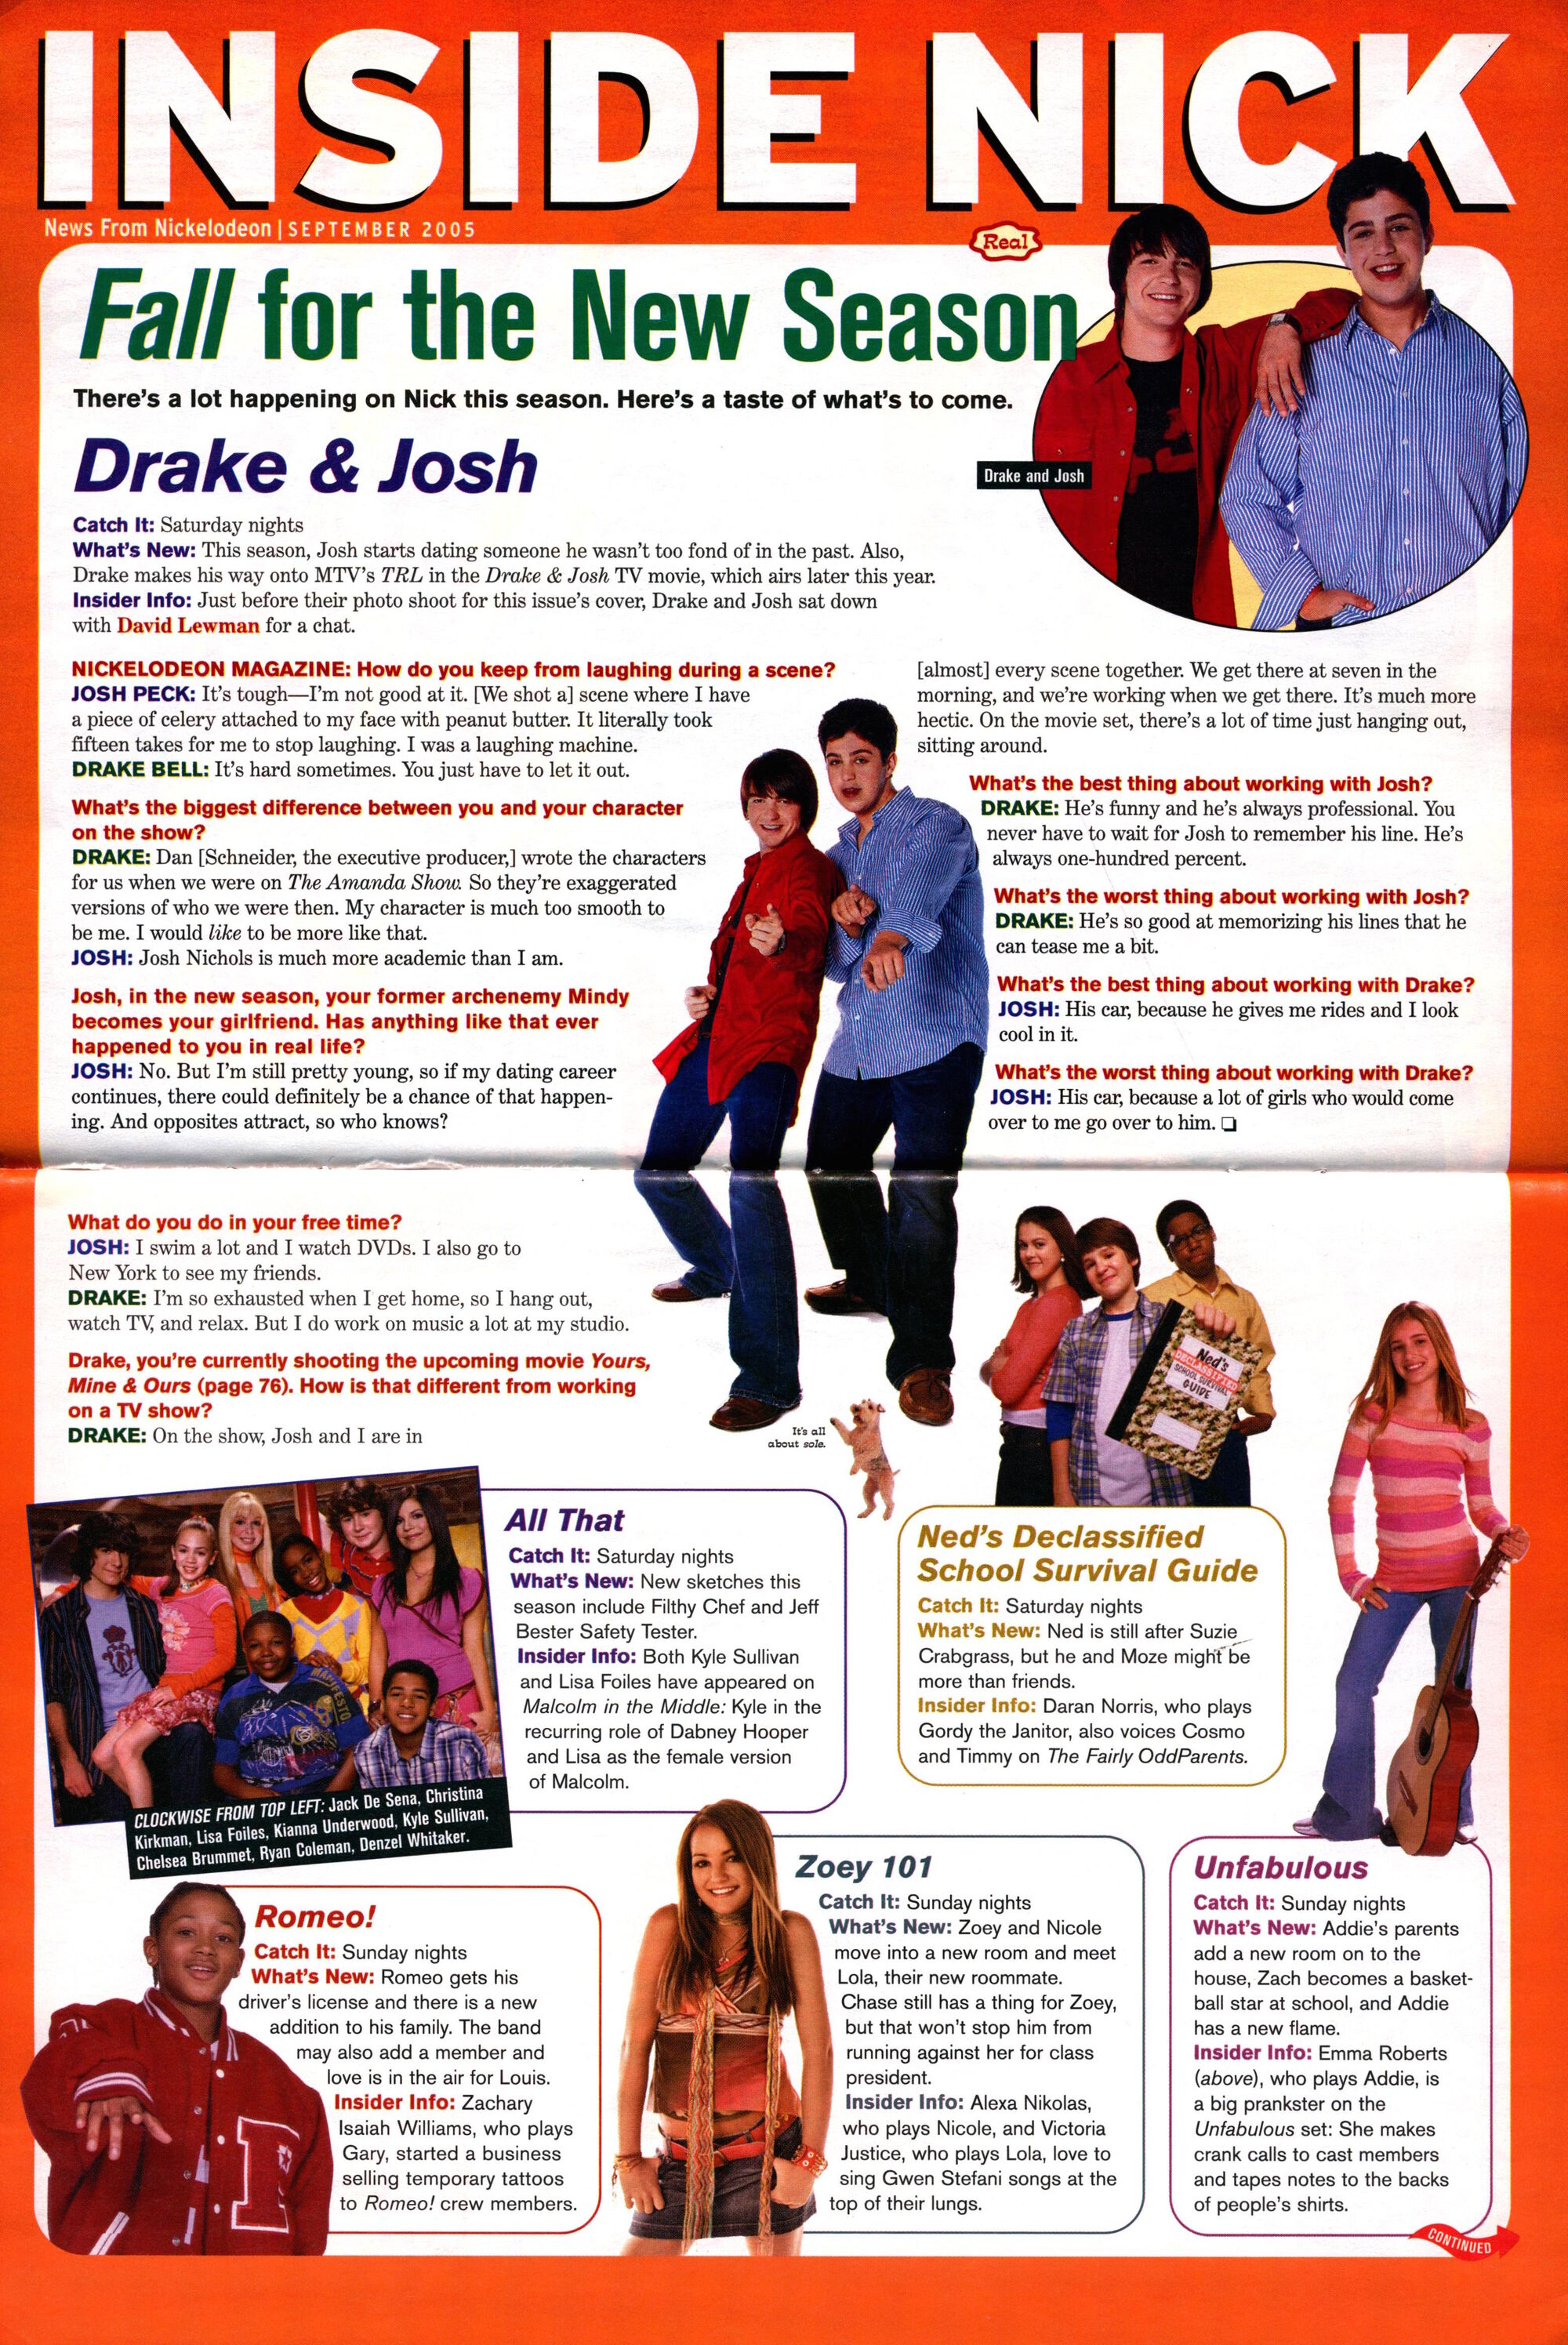 Drake & Josh | Nickelodeon | FANDOM powered by Wikia